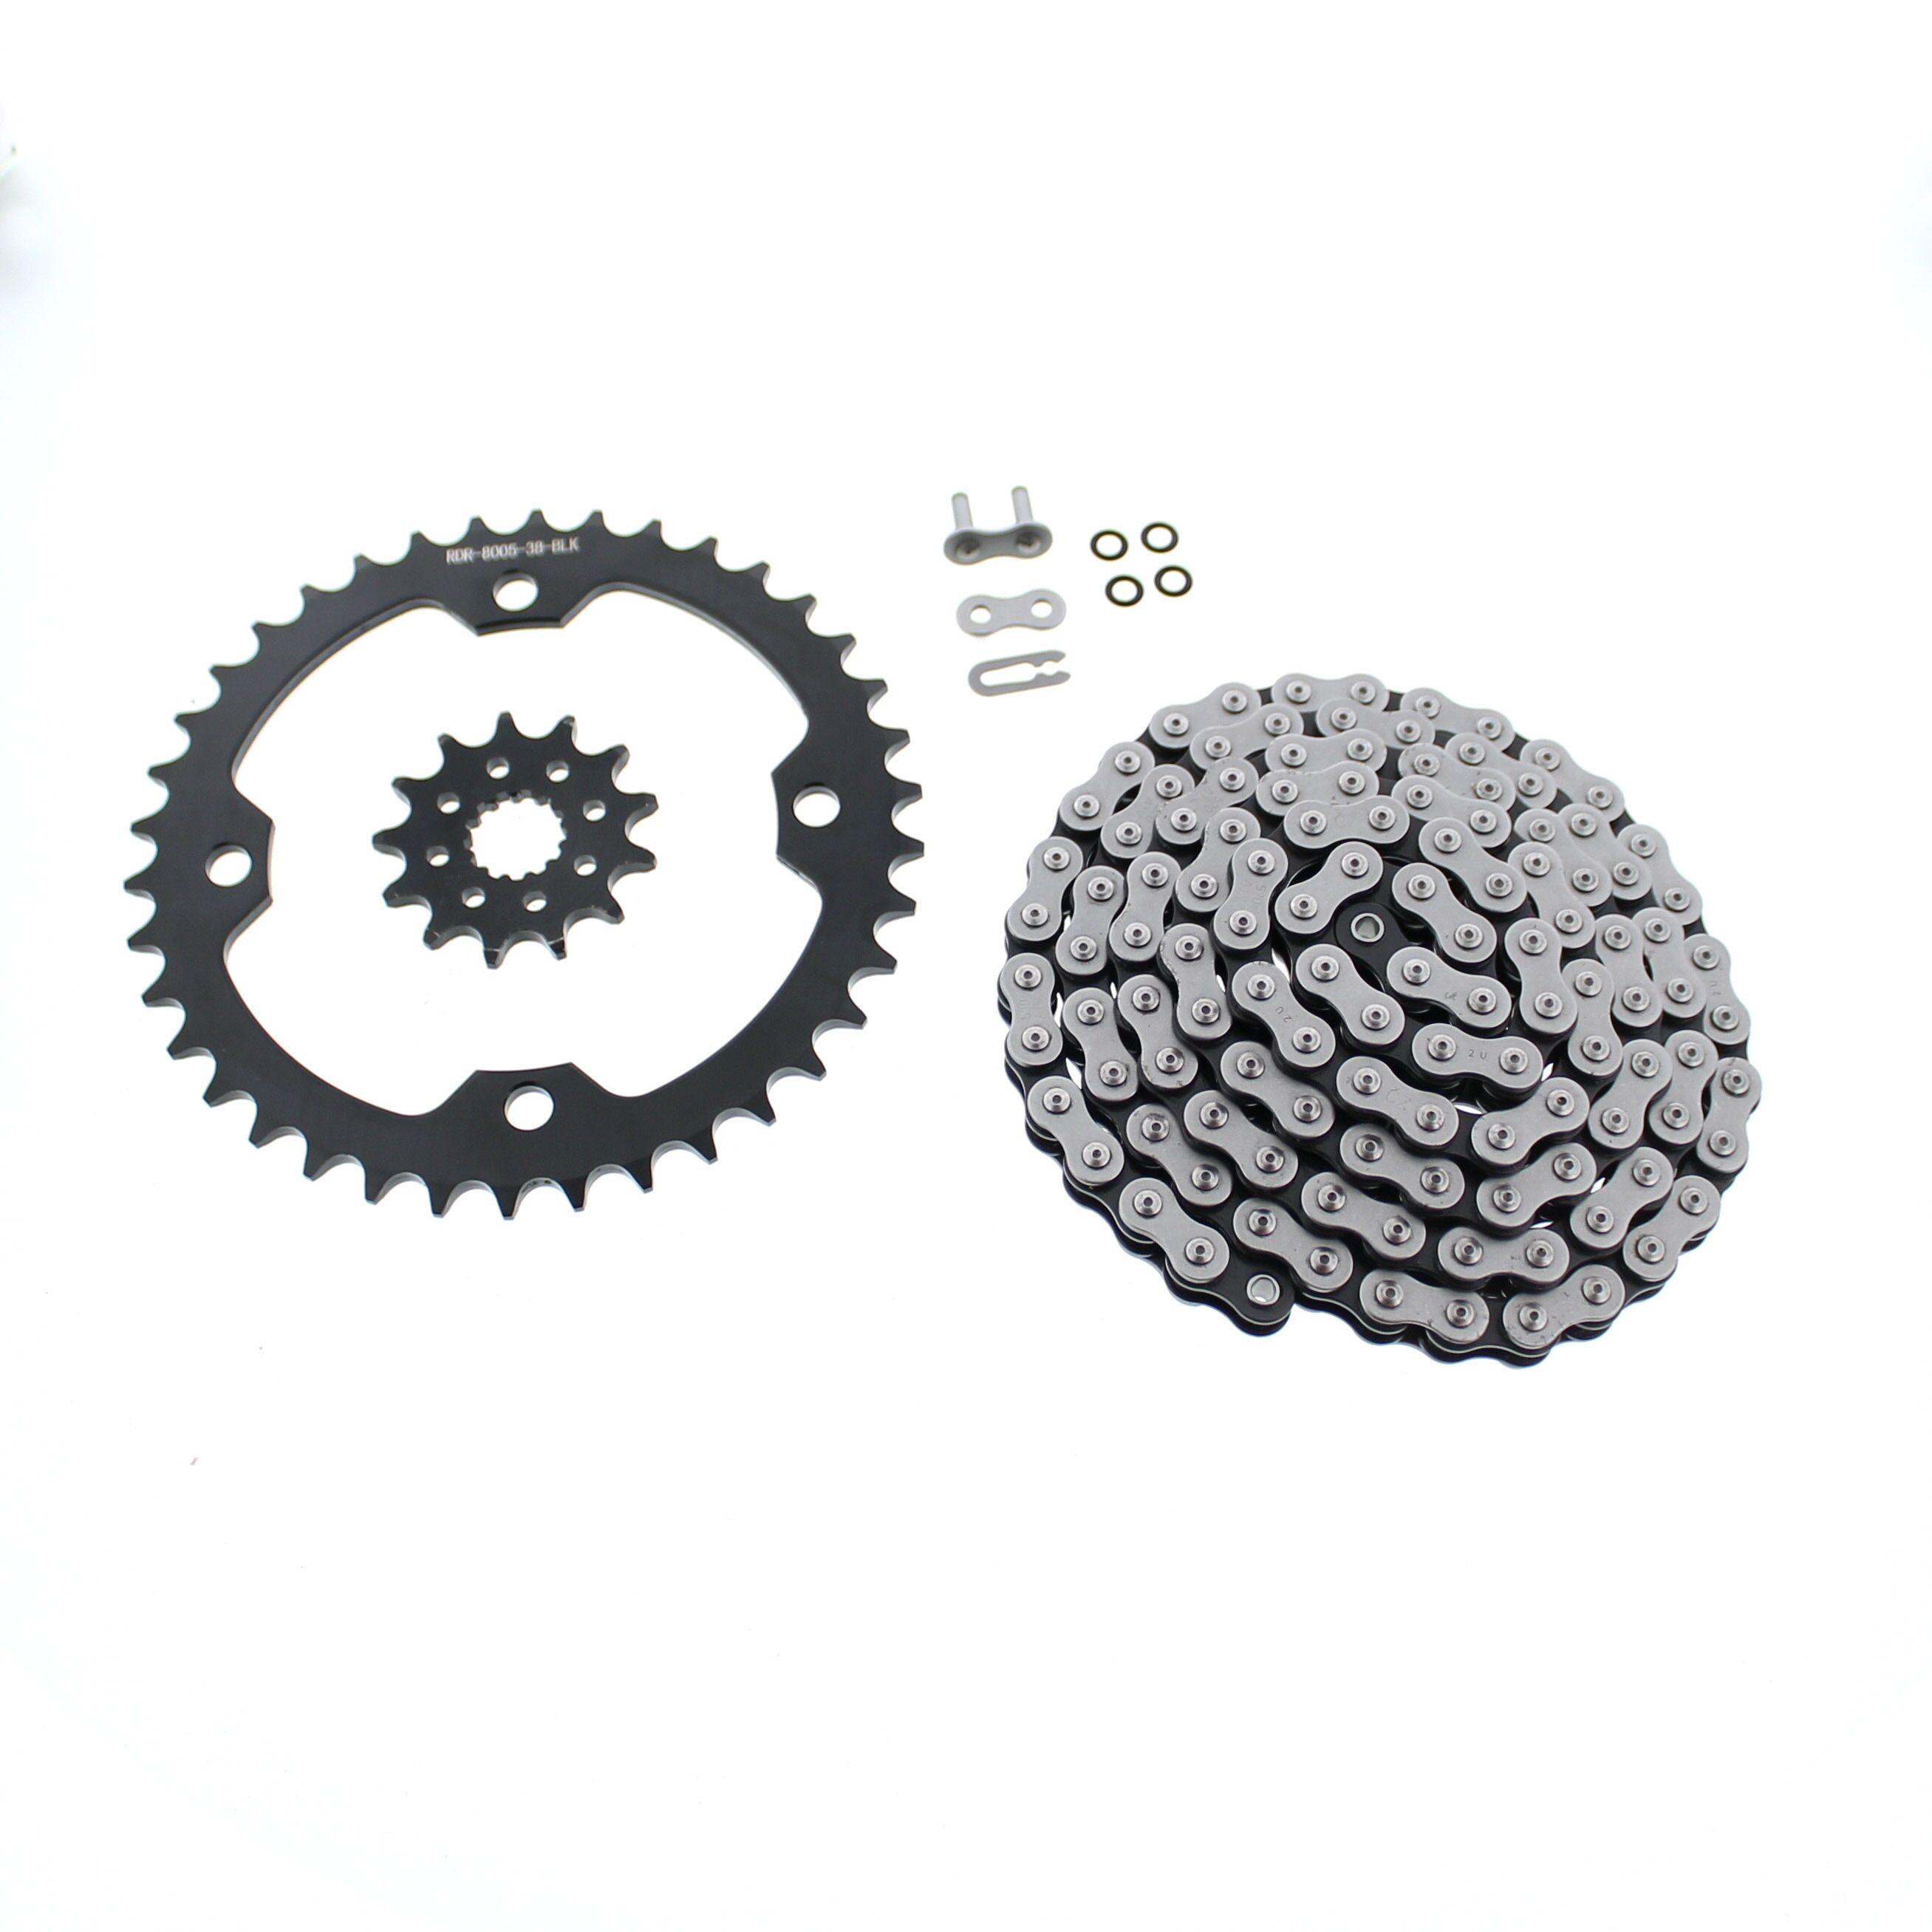 O-Ring Chain and Silver Sprocket 13//38 520-96L 2004-2013 fits Yamaha YFZ450 YFZ 450